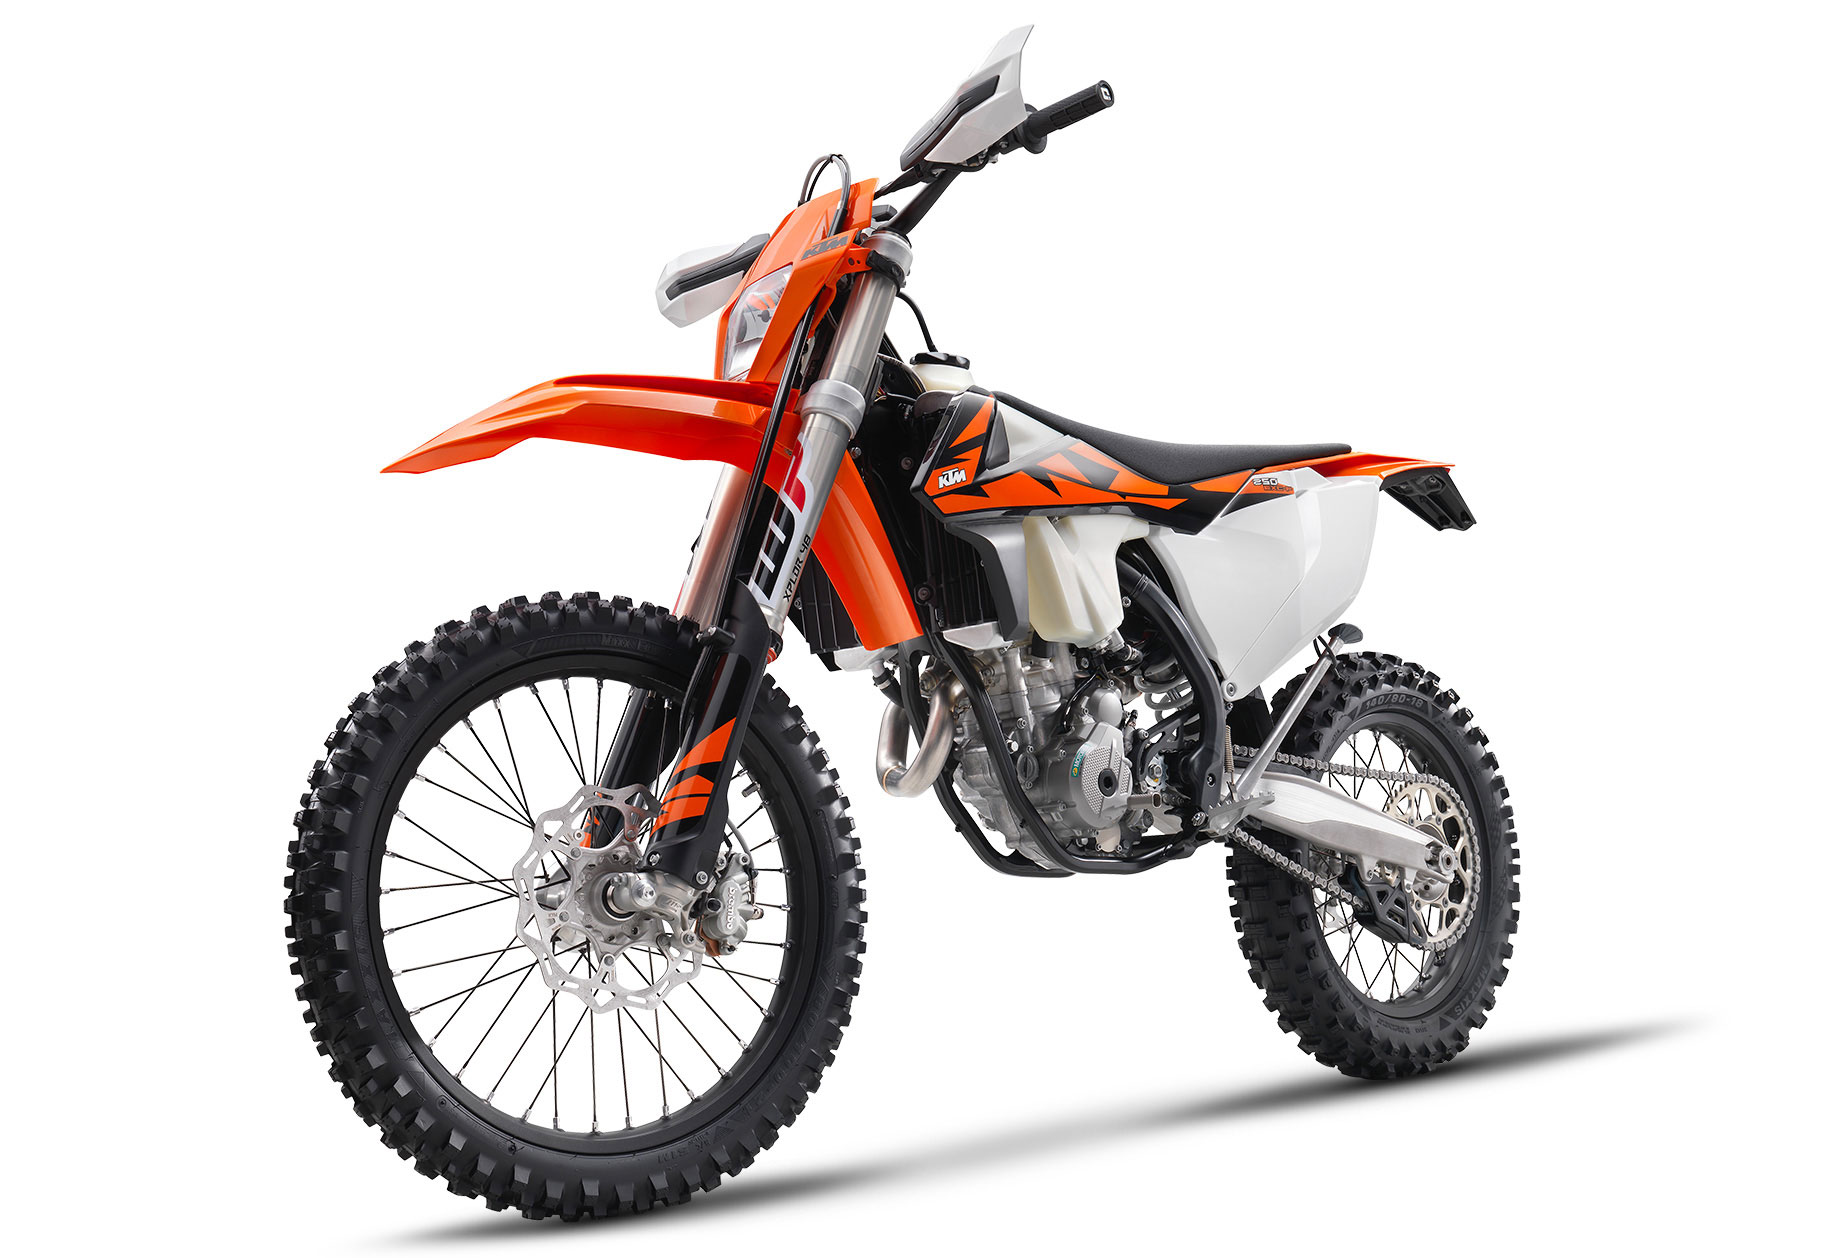 Ktm Exc Review